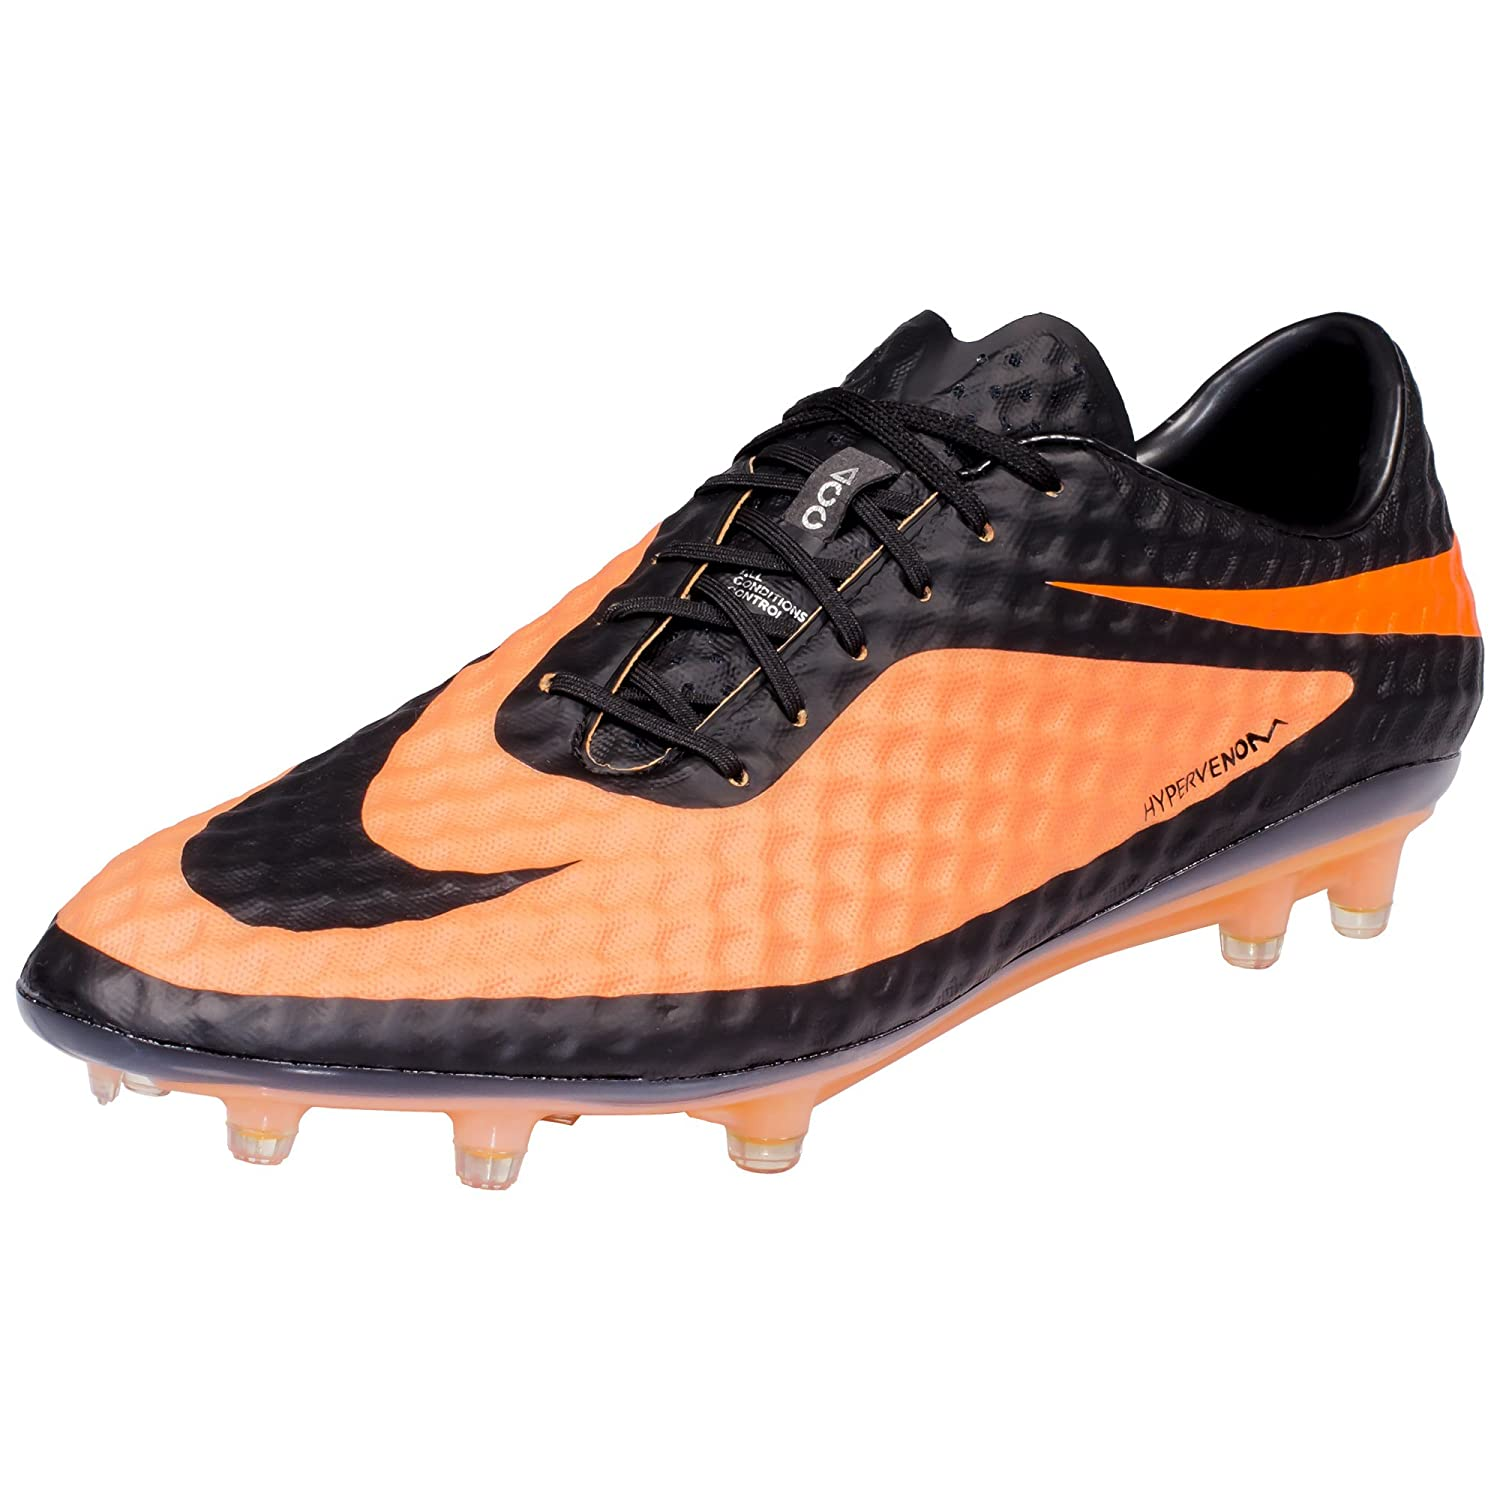 Amazon.com | Nike Hypervenom Phantom FG - (Black/Bright Citrus/Black) (7) |  Soccer